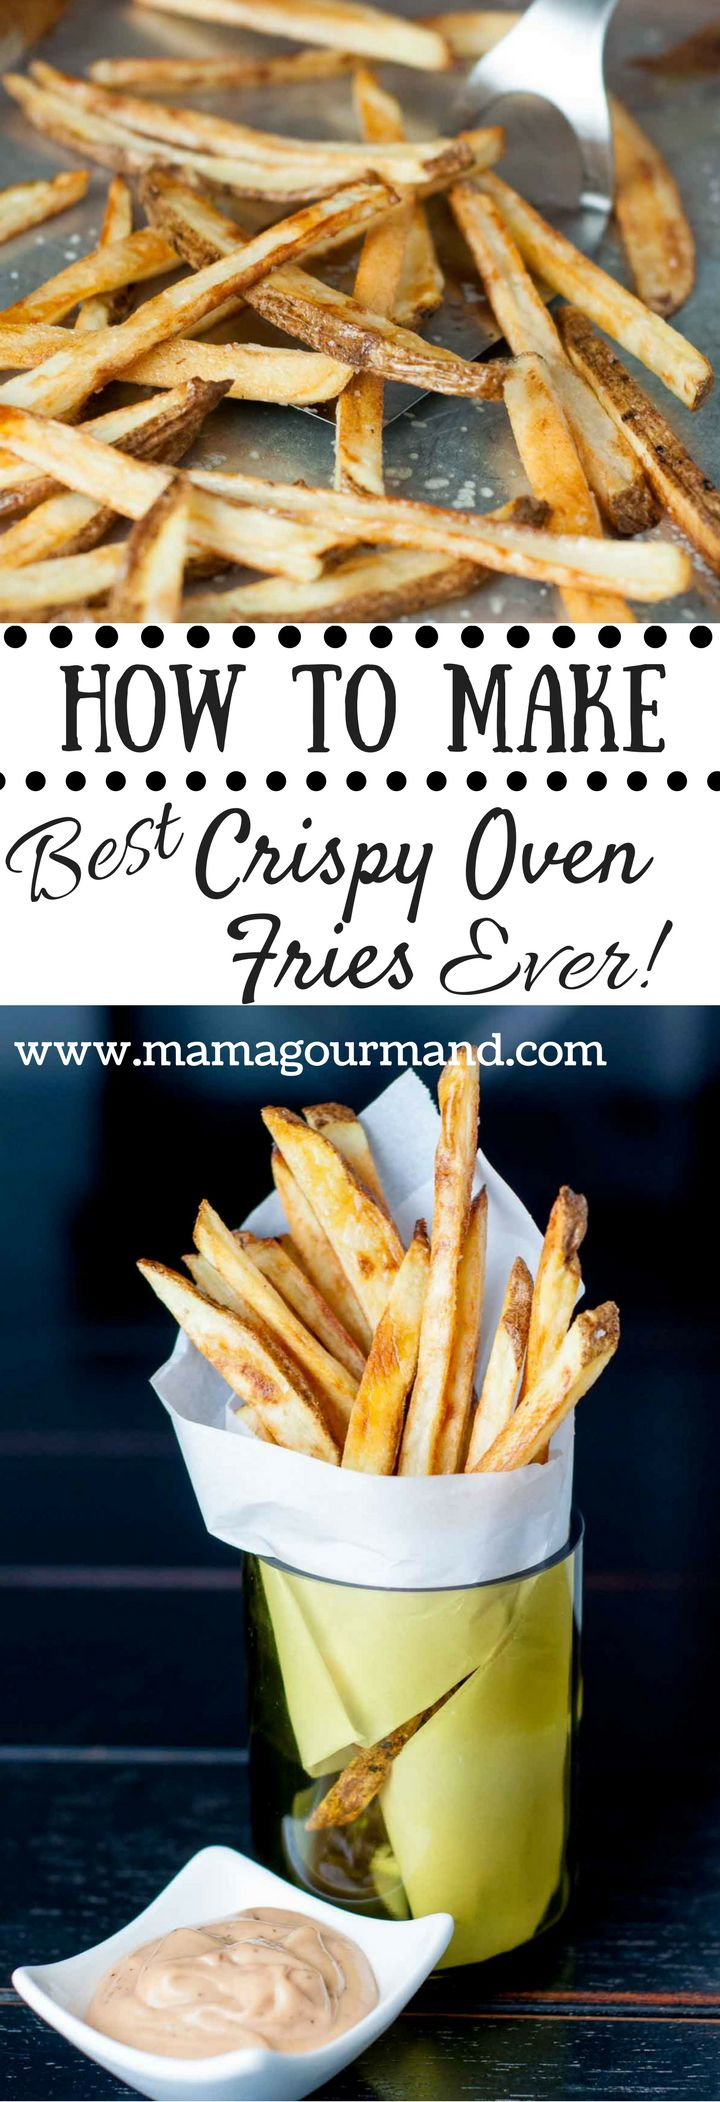 My Best Crispy Oven Baked Fries with Fry Sauce takes all the tips out there on achieving perfectly baked fries and combines them in one easy to follow recipe. http://www.mamagourmand.com